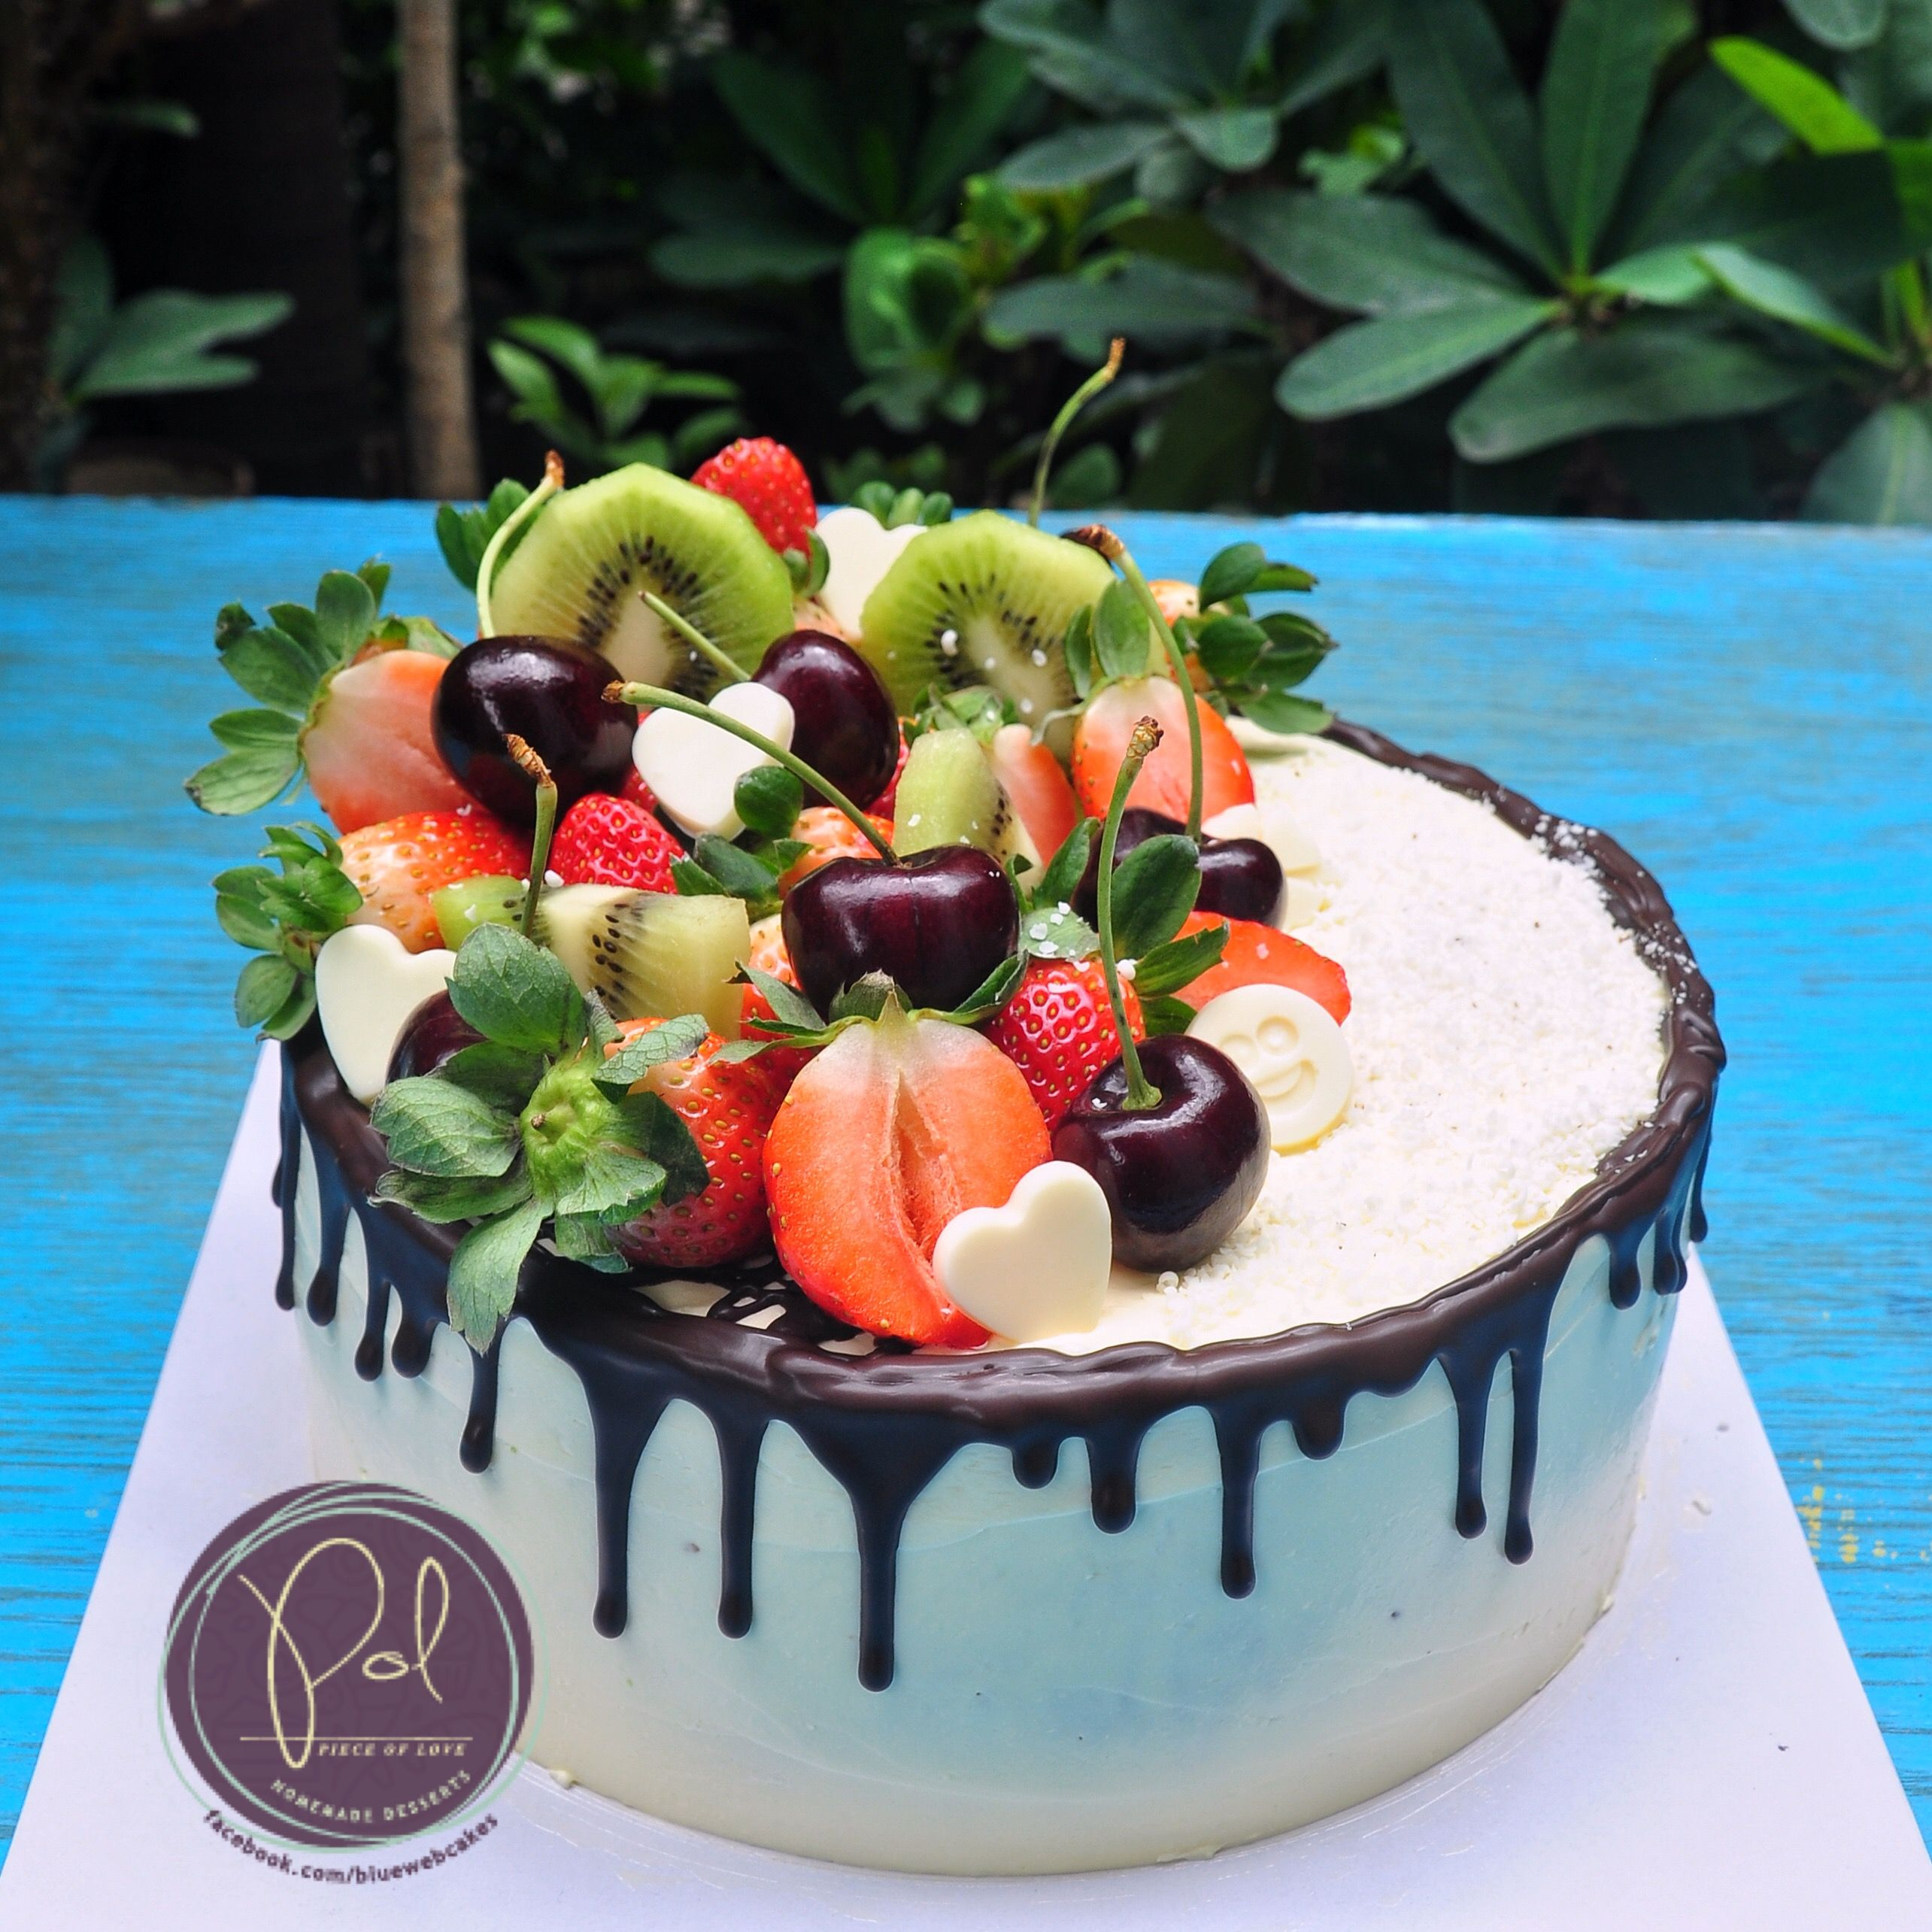 Buttercream Cake With Fresh Fruits Decorating Cake Decorated